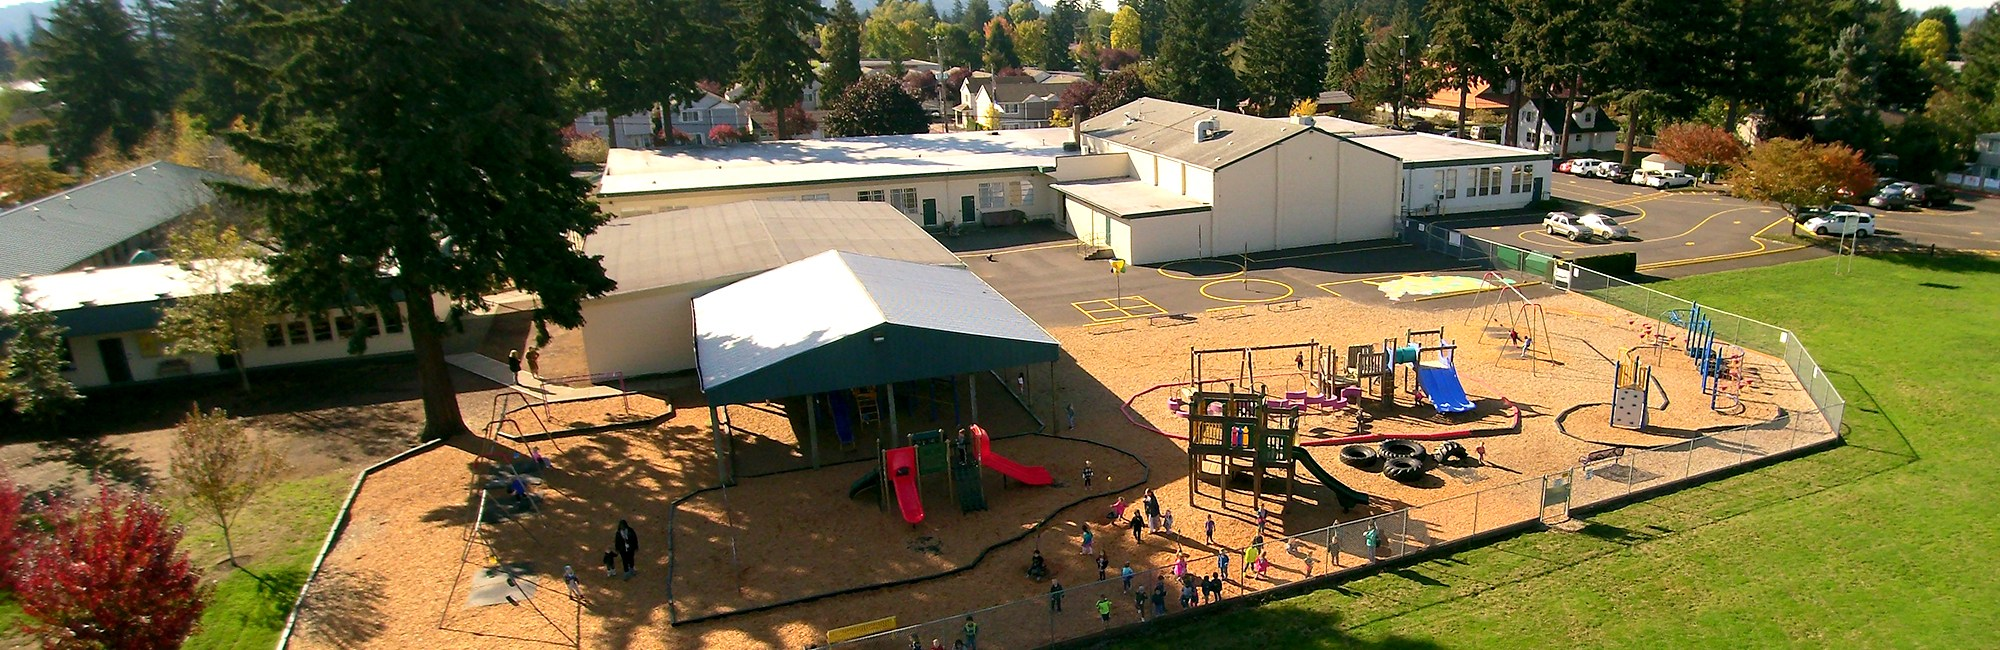 Aerial photo of Elementary campus with playgrounds in foreground